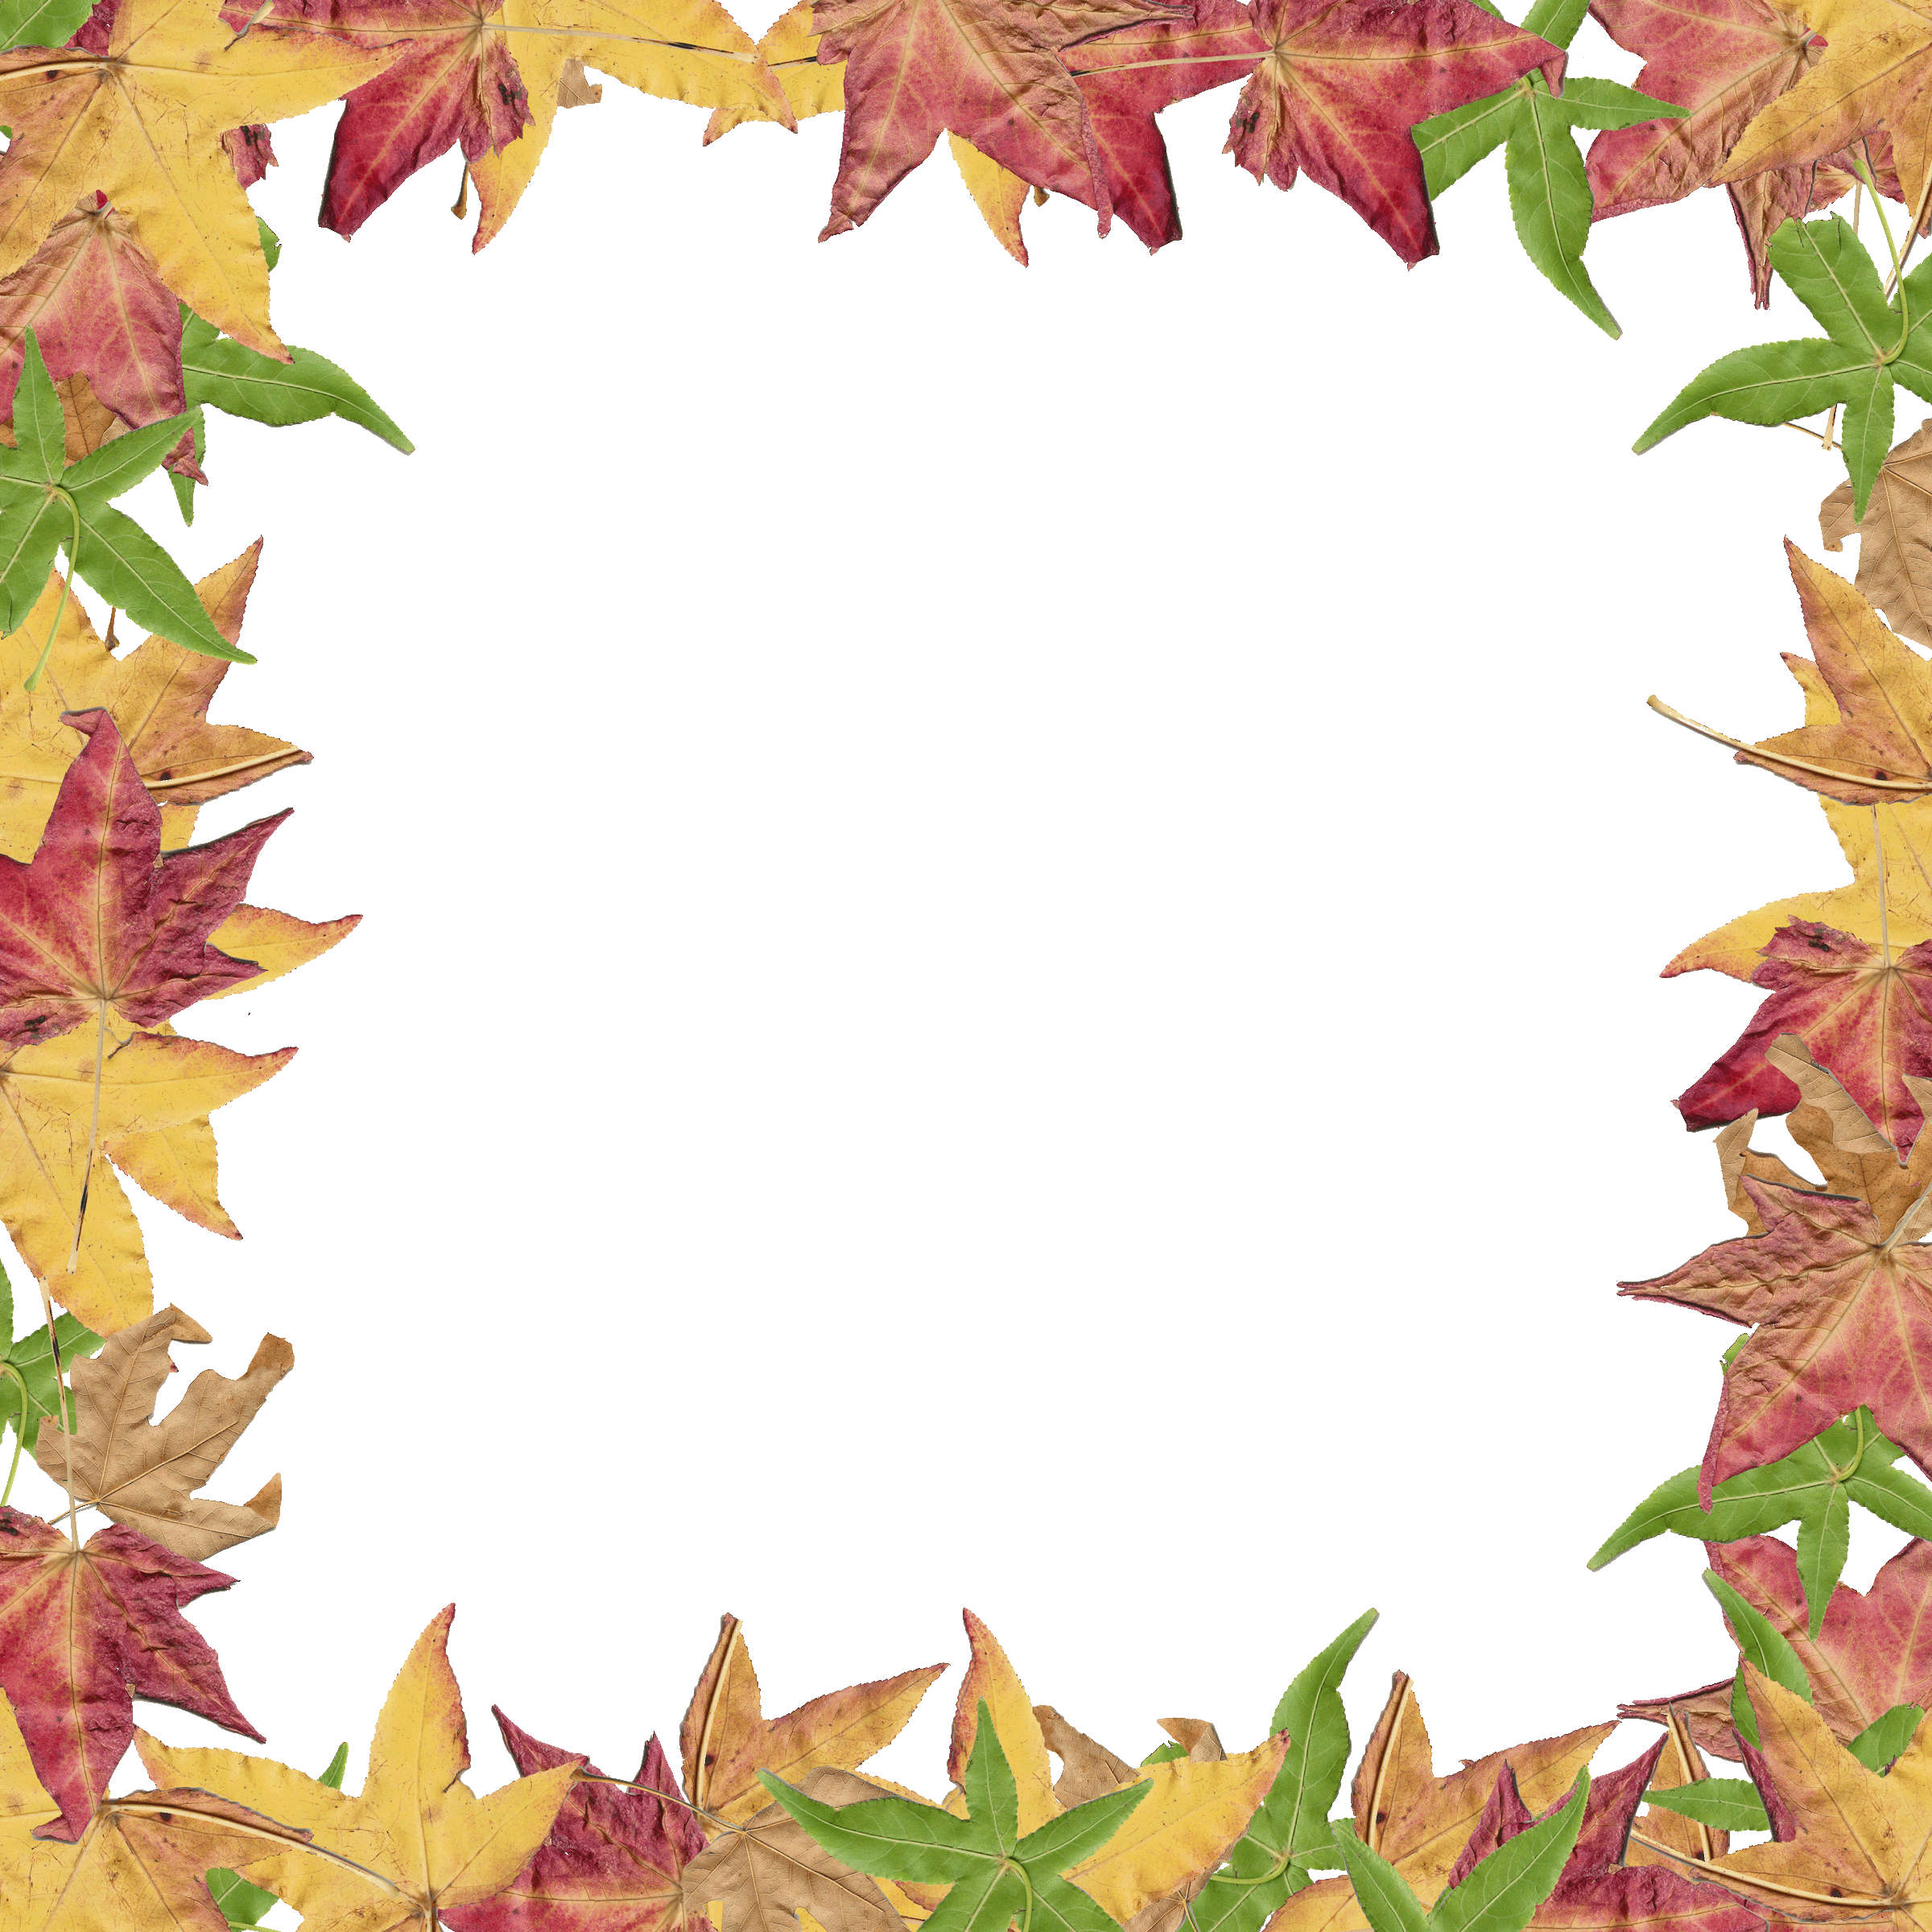 Fall Borders Free - ClipArt Best